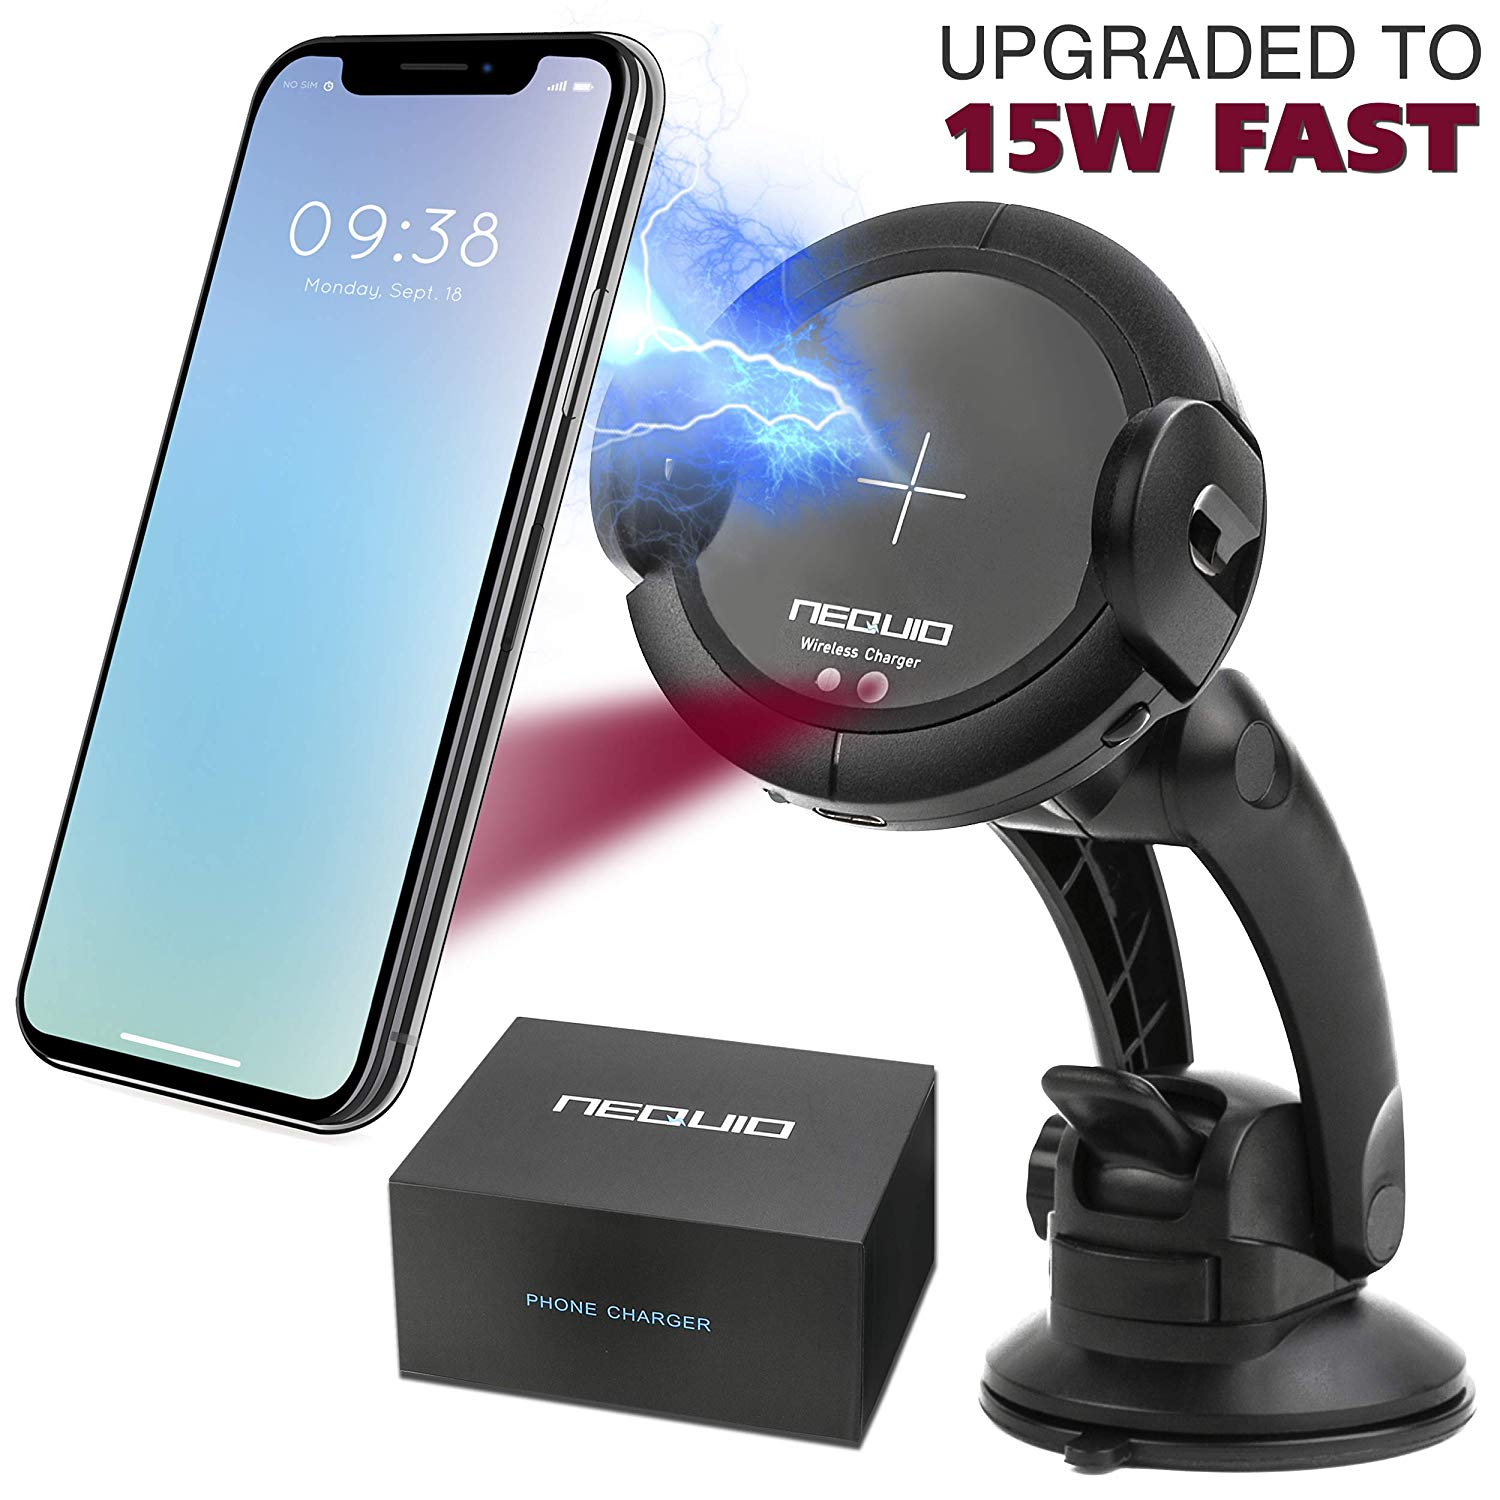 Nequio Fast Wireless Charger Car Mount.ed